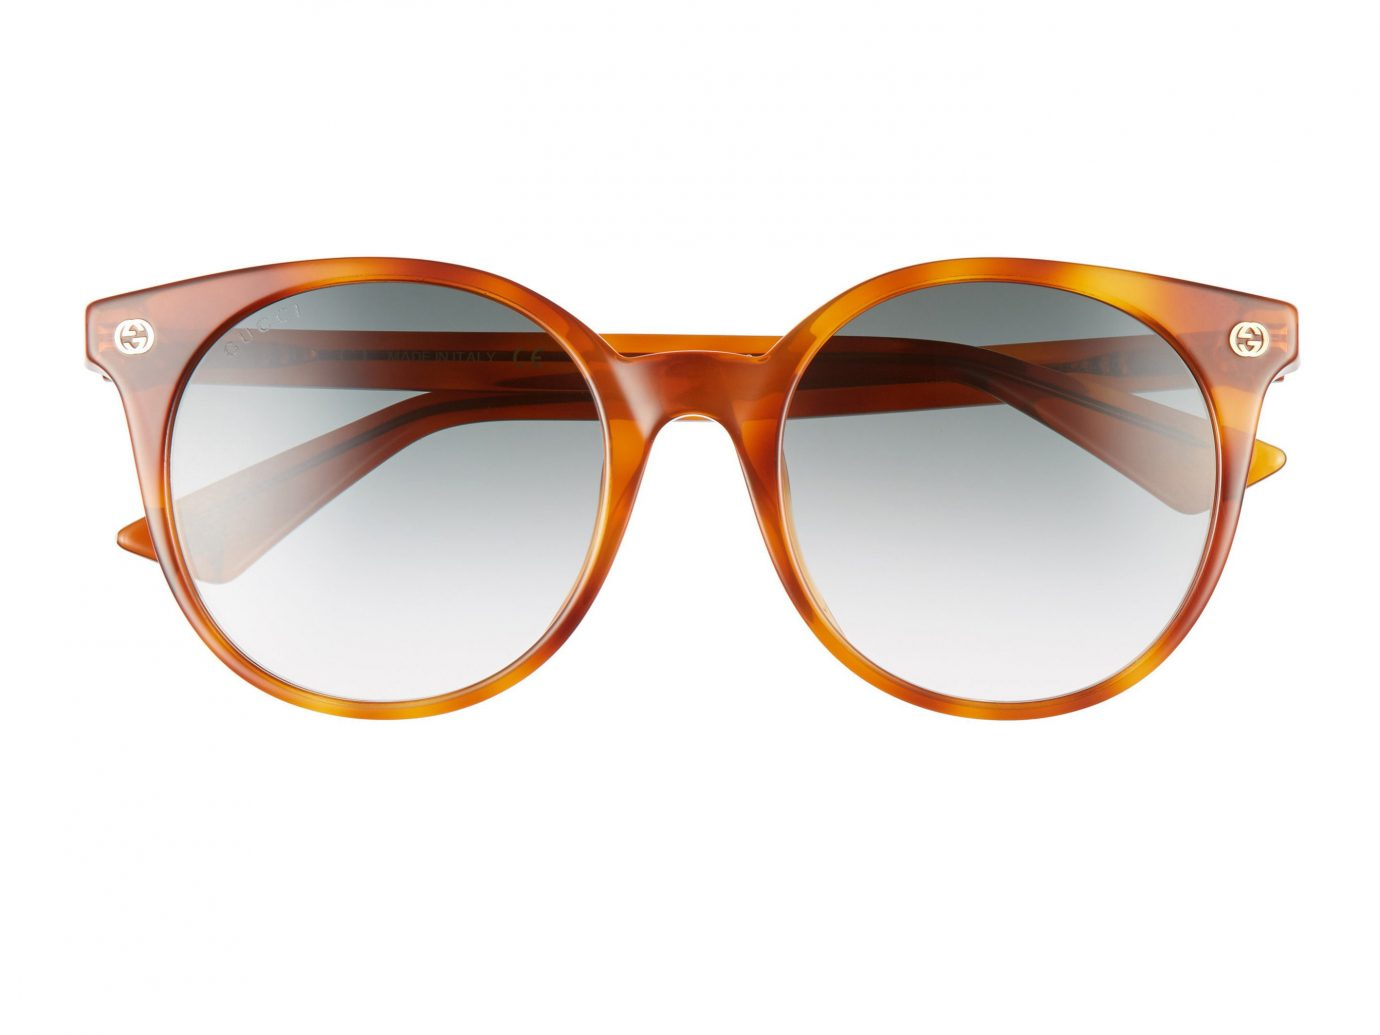 Style + Design spectacles sunglasses eyewear orange accessory yellow vision care glasses goggles brown product product design font caramel color